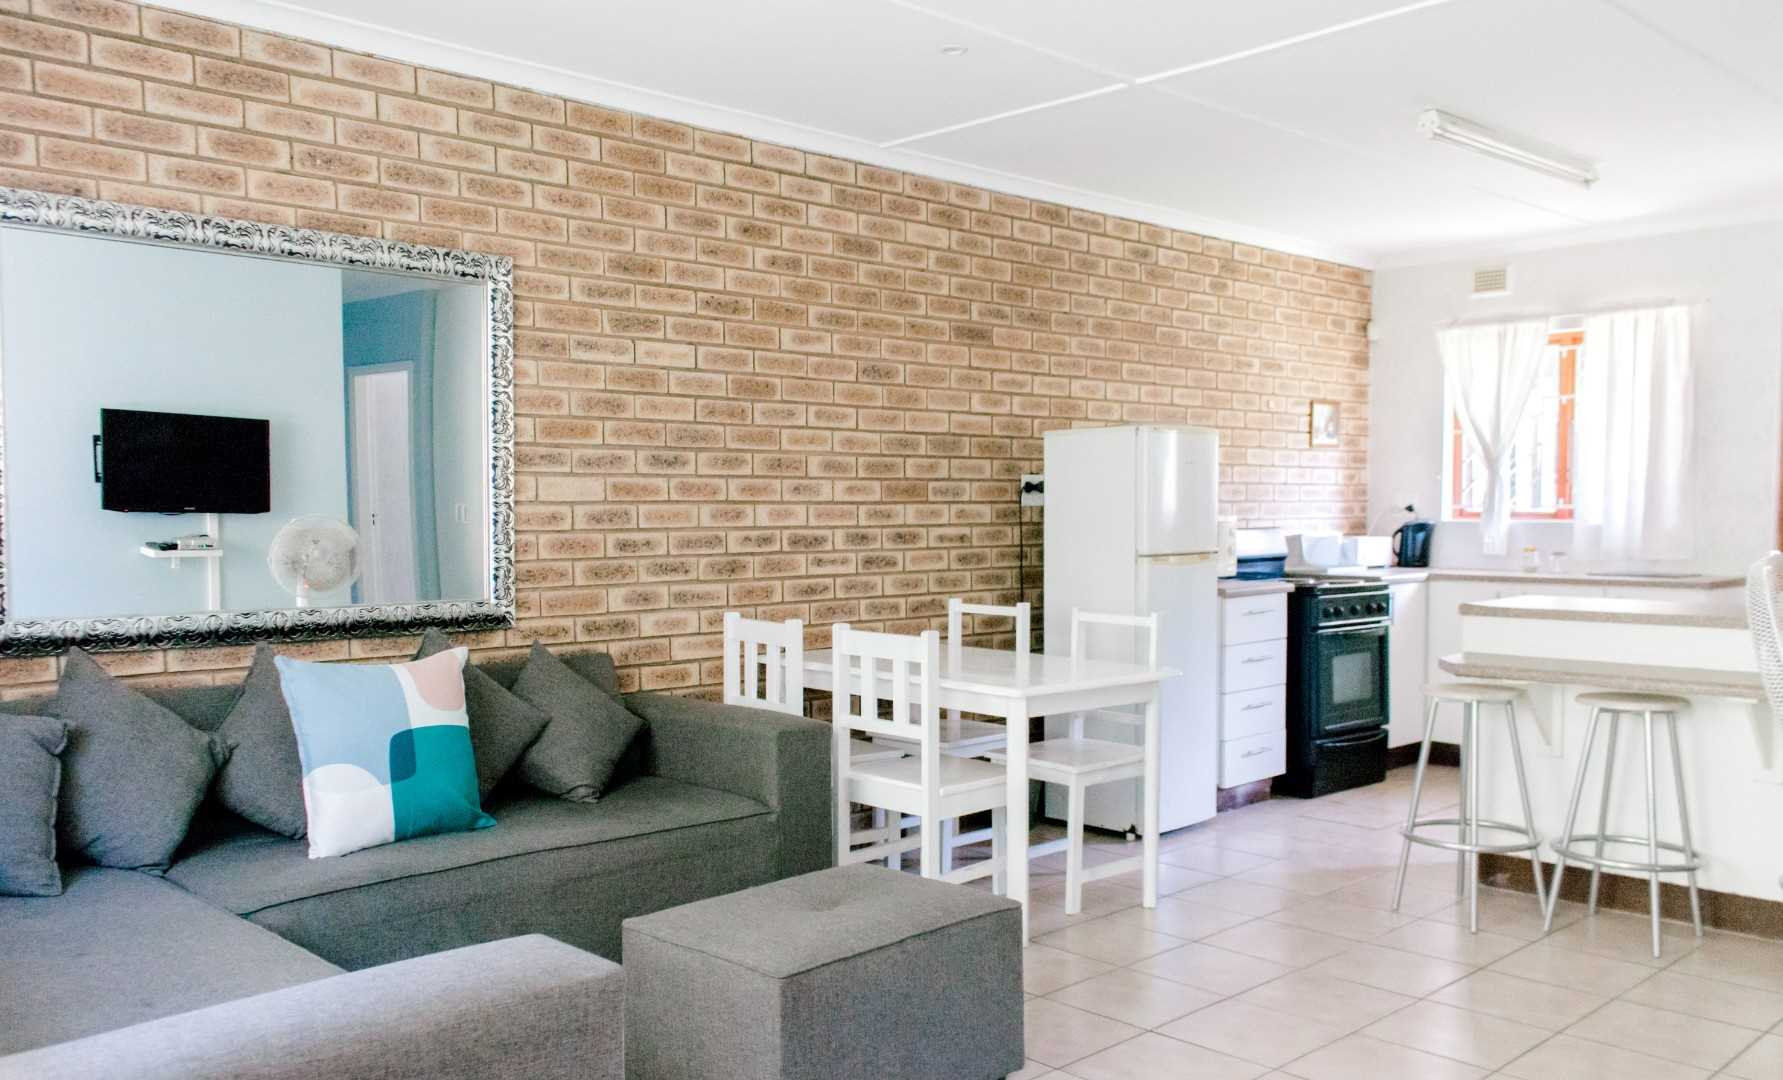 Decor of 2 and 3 bedroom units - open plan